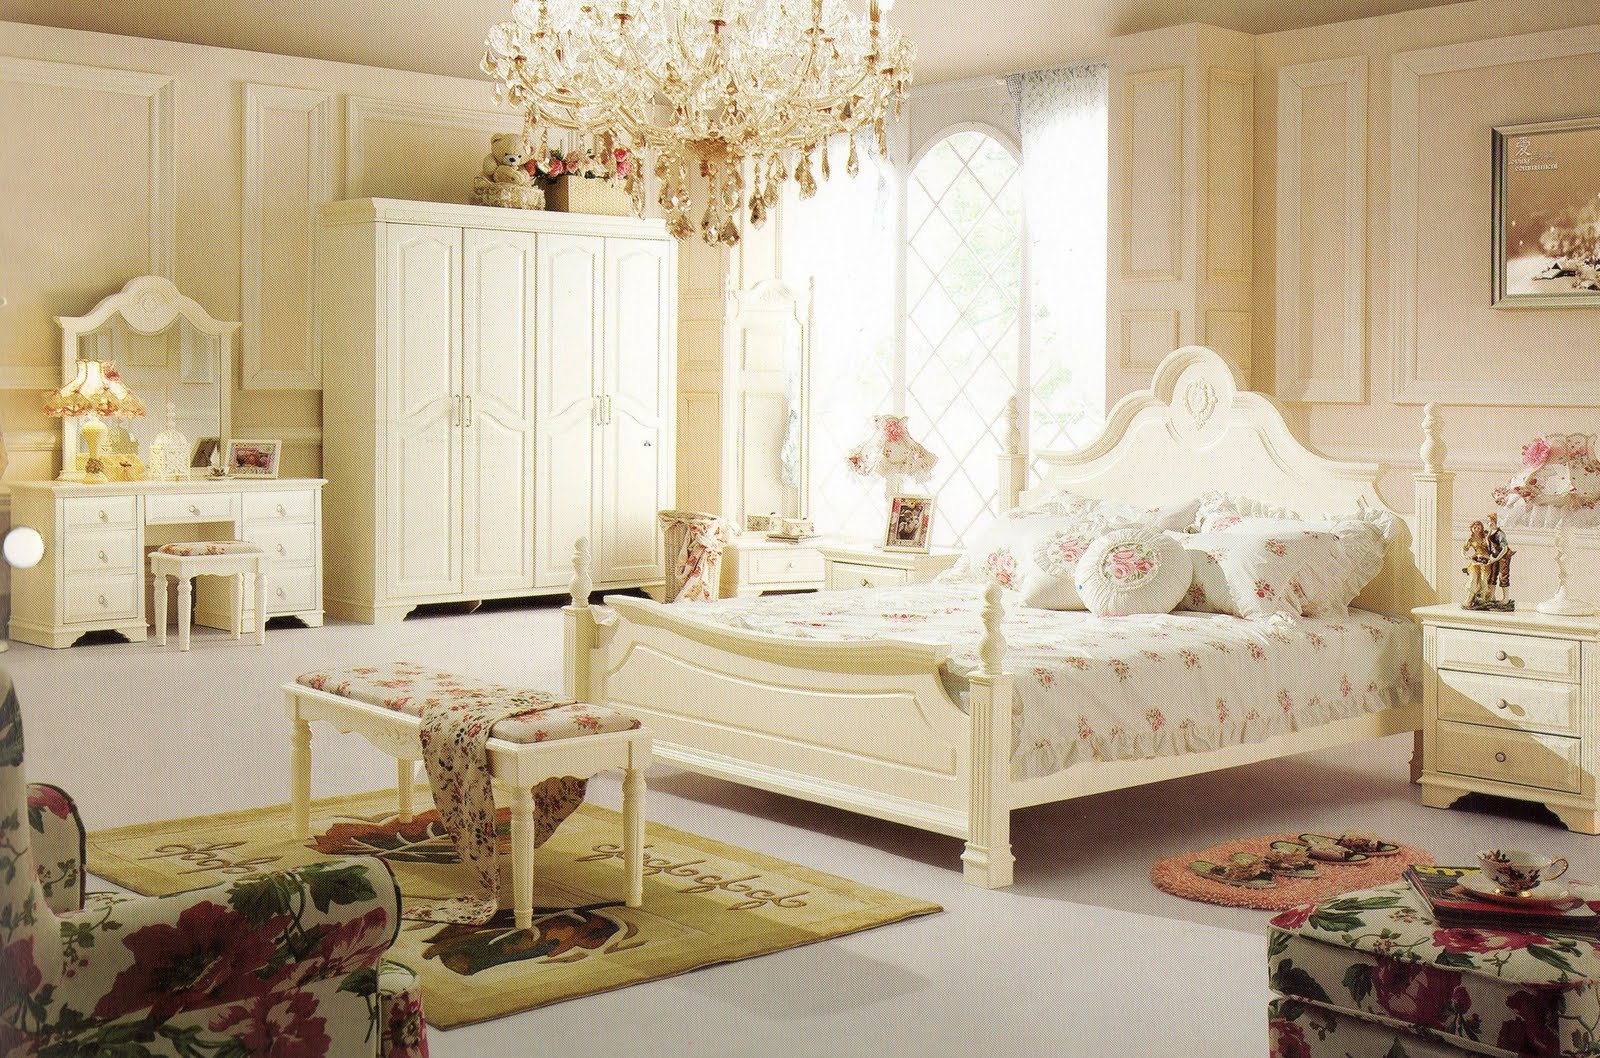 Slaapkamer Inrichting Landelijk Elegant Bedroom Furniture Bedroom Furniture High Resolution